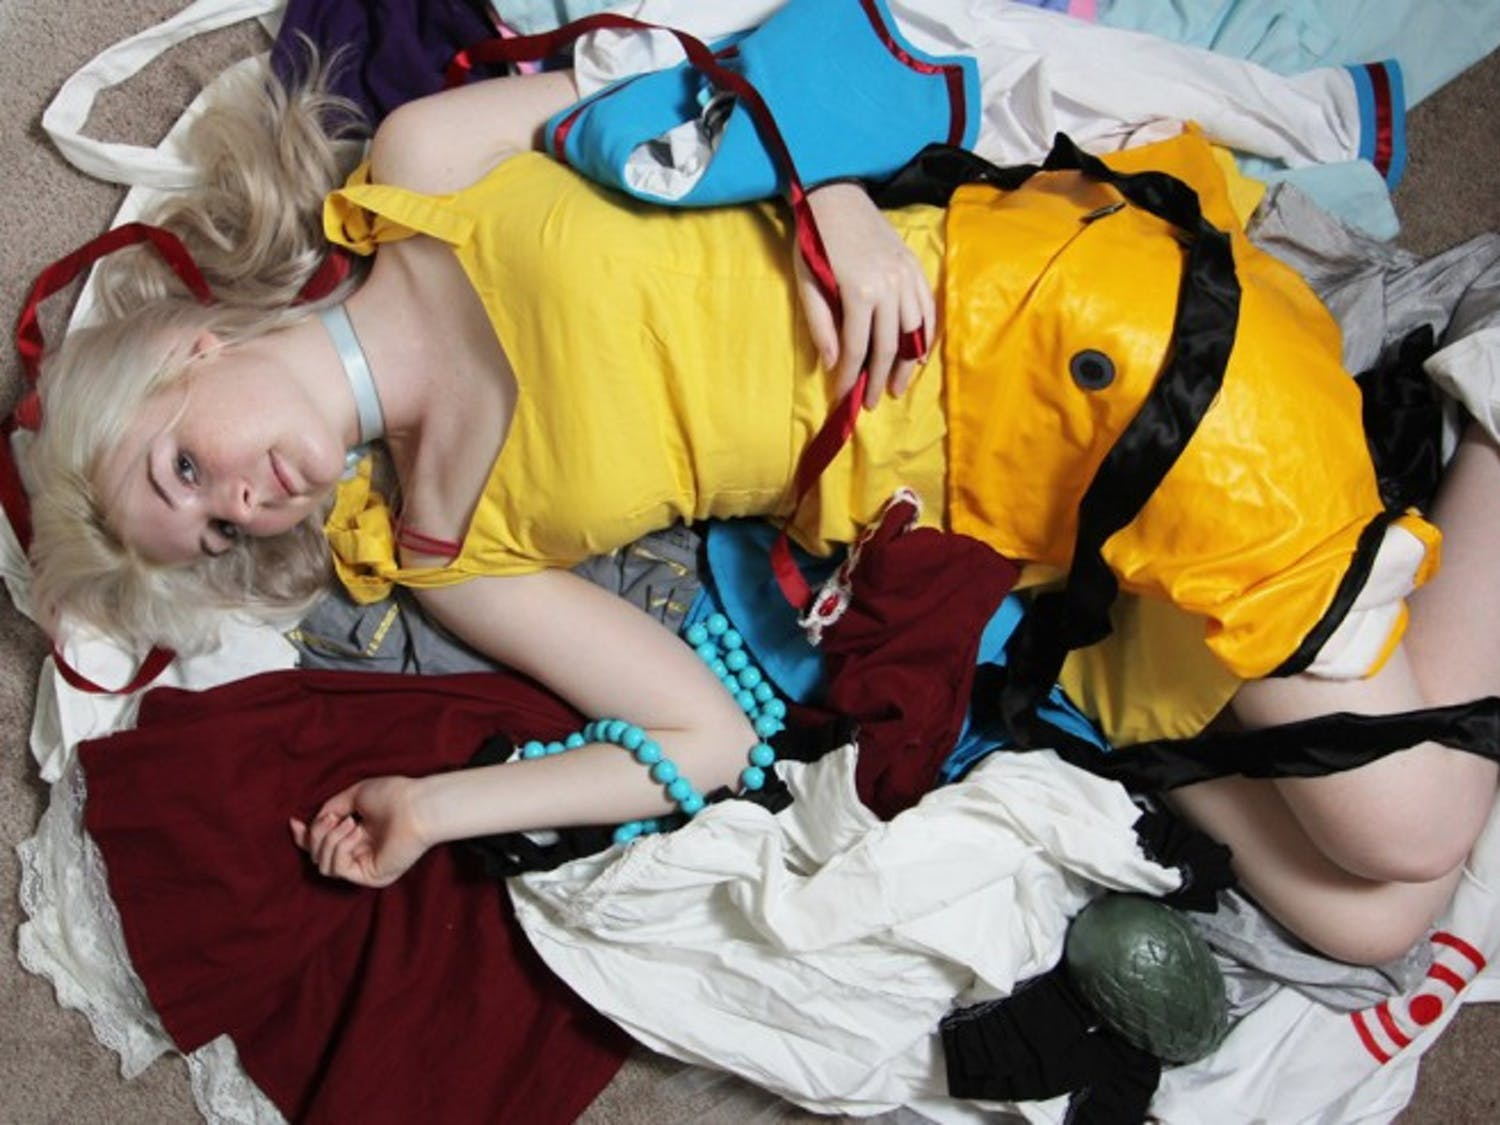 Devan Baird, a 21-year-old telecommunication senior, lies on her competition-winning cosplays, which are costumes based on television, anime and comic book characters.